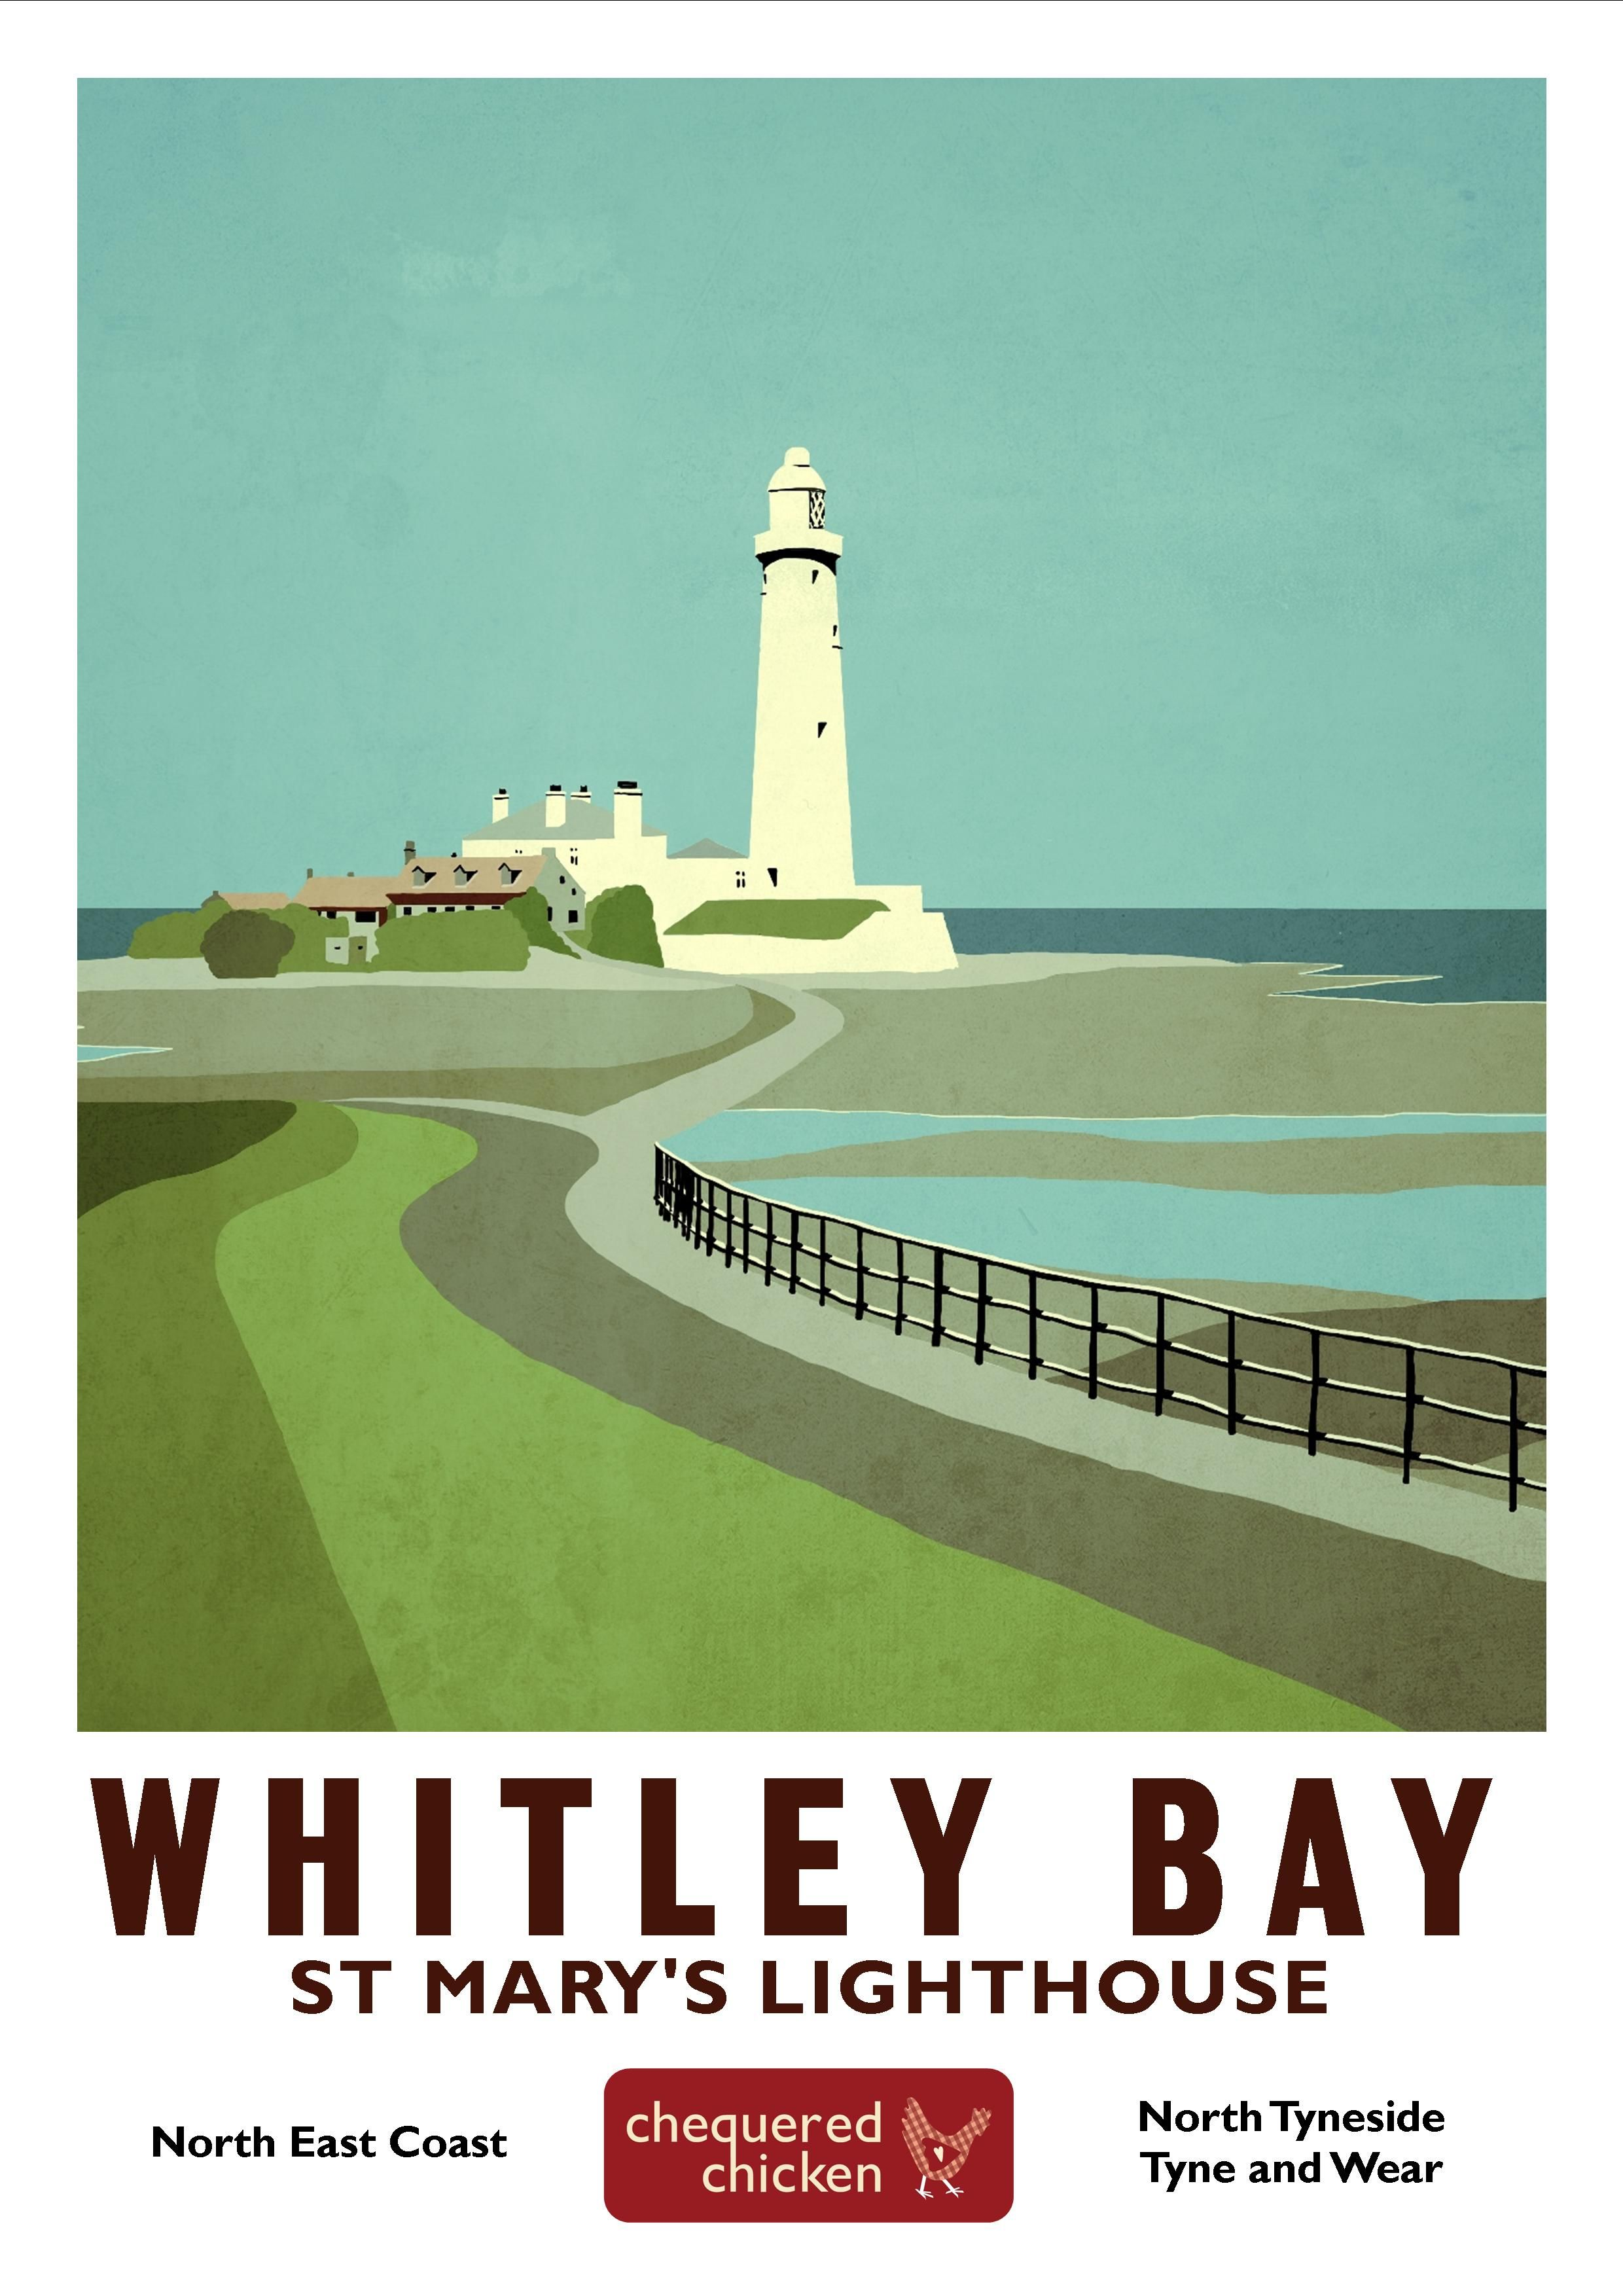 Whitley Bay Print Travel Posters Posters Uk Vintage Travel Posters